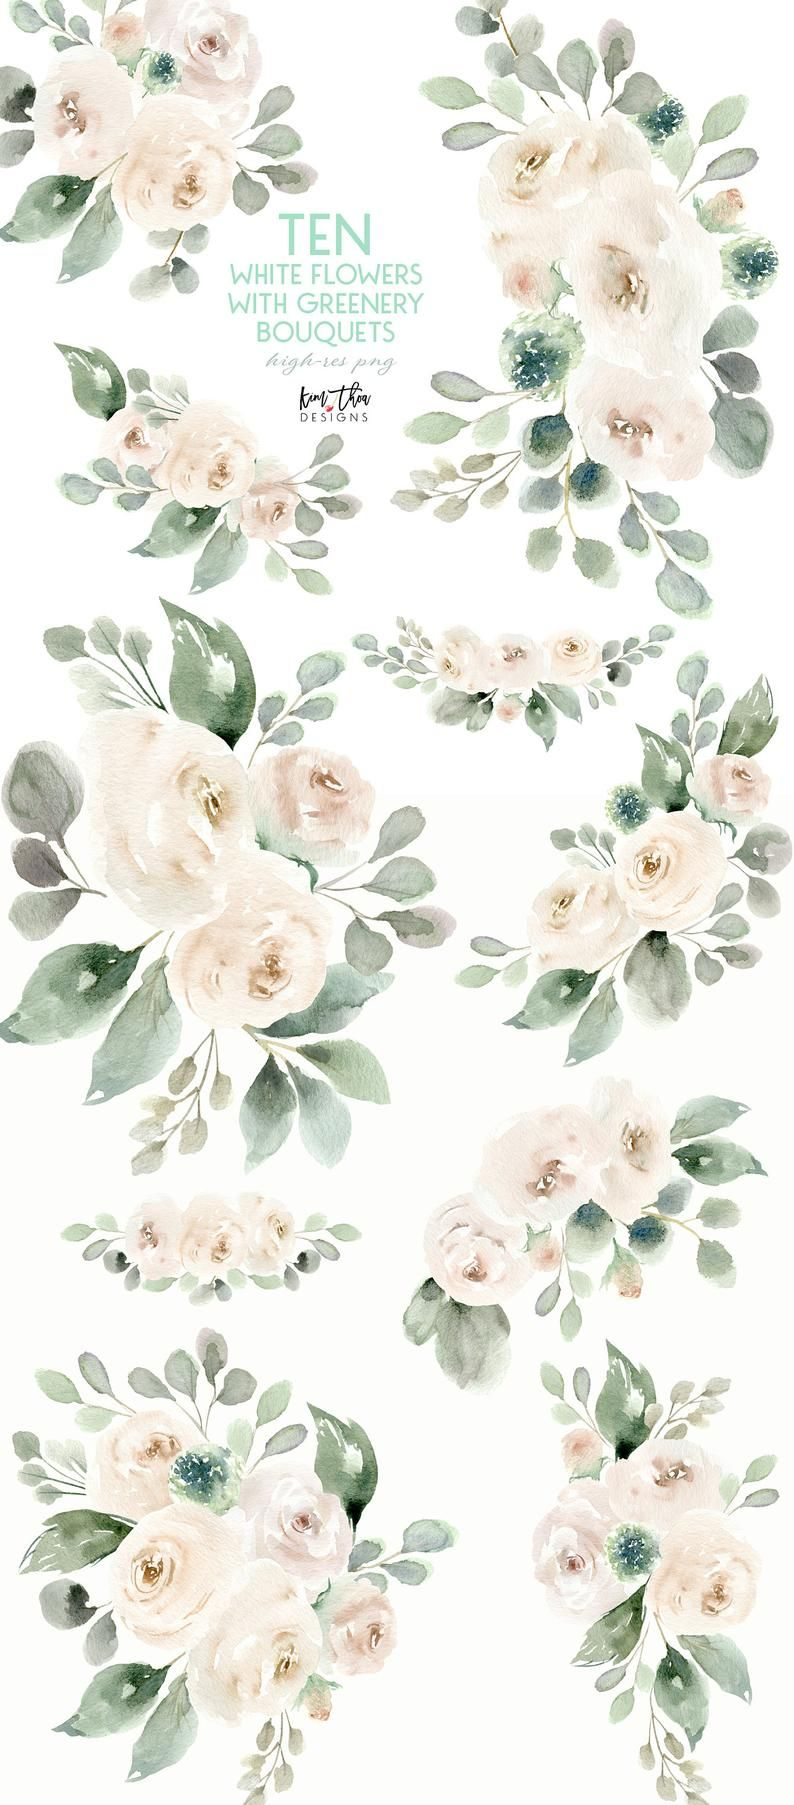 White Flower Watercolor Clipart With Eucalyptus Greenery Etsy In 2021 Watercolor Flowers Watercolor Clipart Blossoms Art